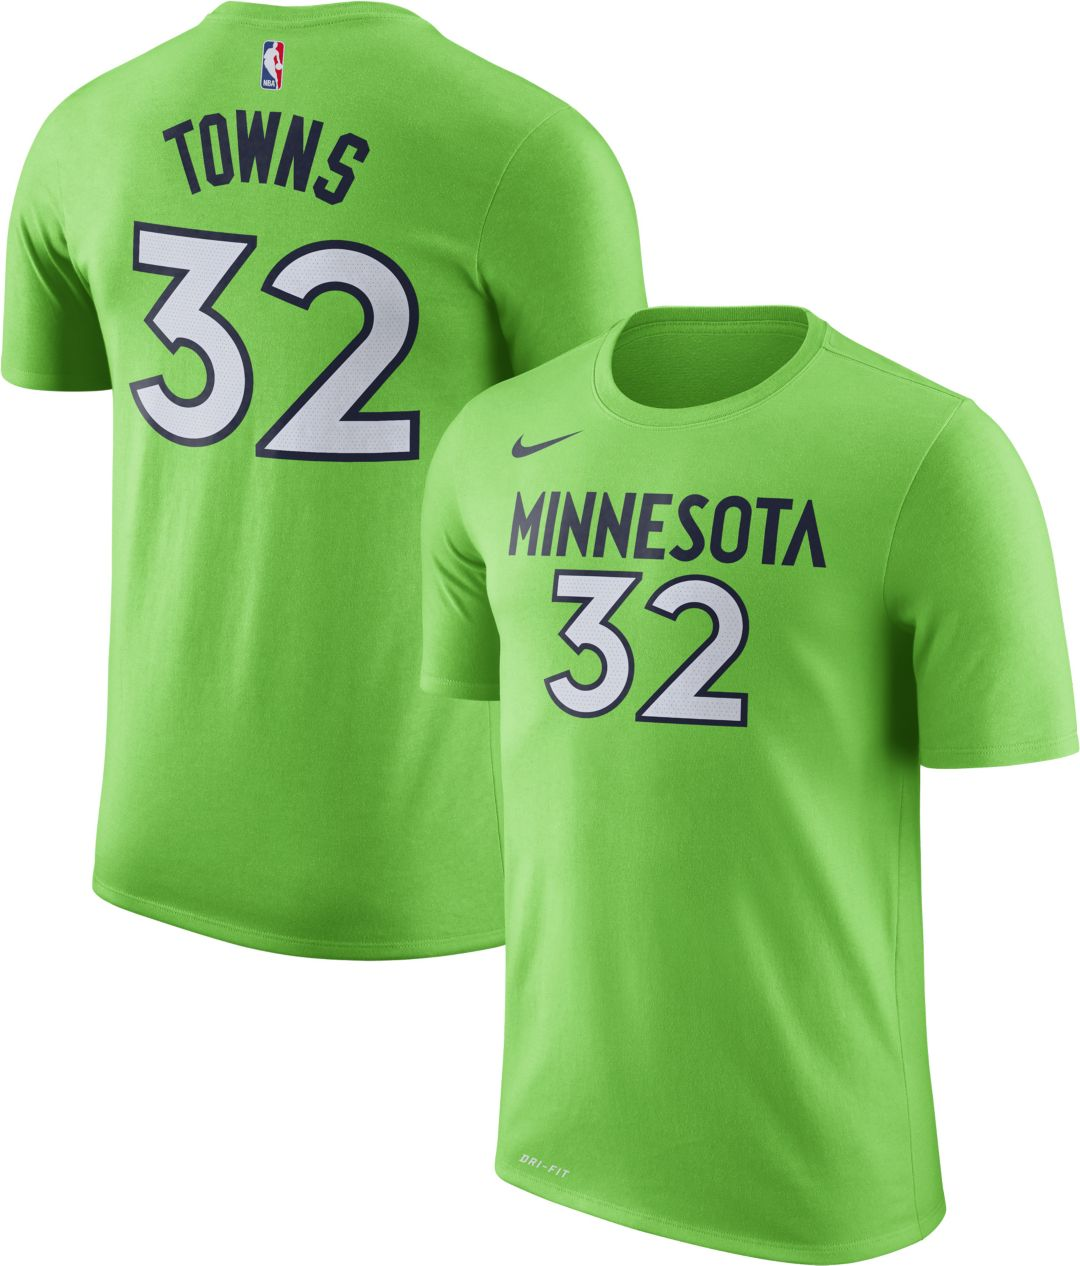 fe2a3f75 Nike Youth Minnesota Timberwolves Karl-Anthony Towns #32 Dri-FIT Green T- Shirt. noImageFound. Previous